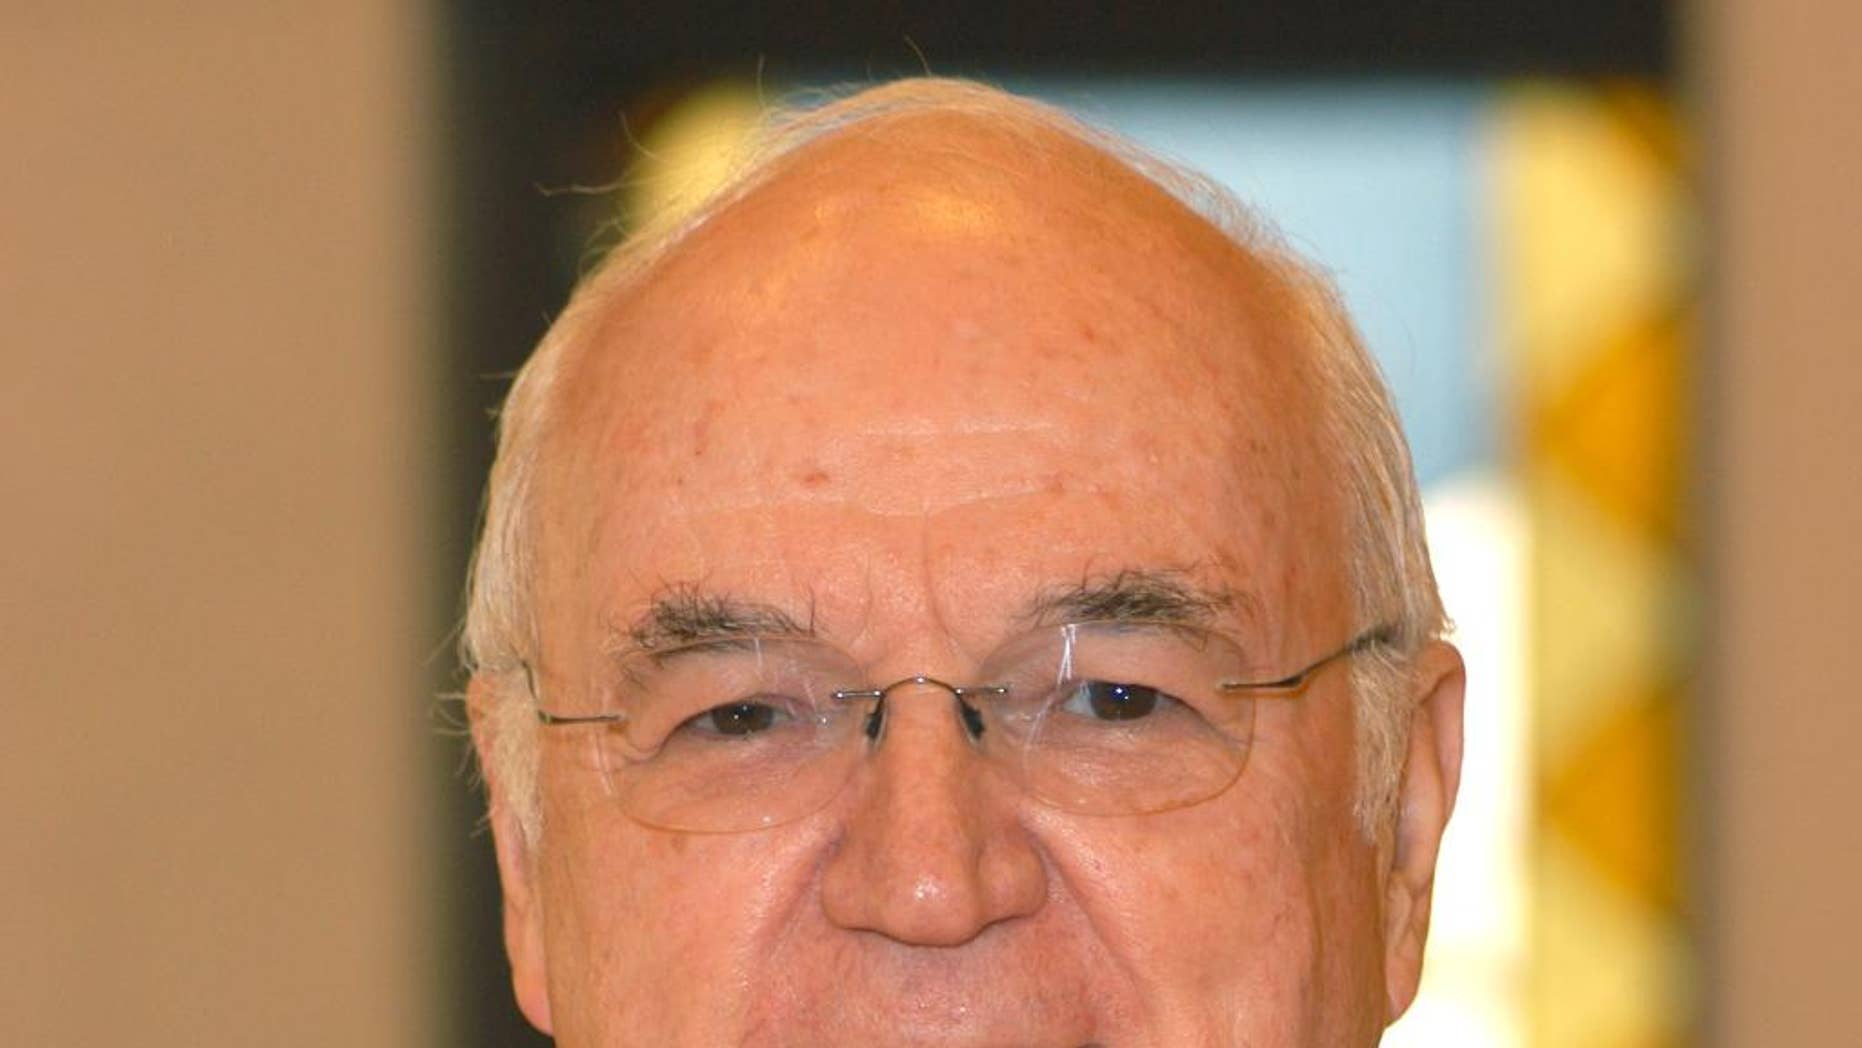 In this undated photo provided by the University of Notre Dame is the Rev. Richard McBrien. McBrien, a Notre Dame theologian known for his unabashed liberal stands on various church teachings and his popular books on Catholicism, died Sunday, Jan. 25, 2015 in his native Connecticut, according to the school. He was 78. (AP Photo/University of Notre Dame)